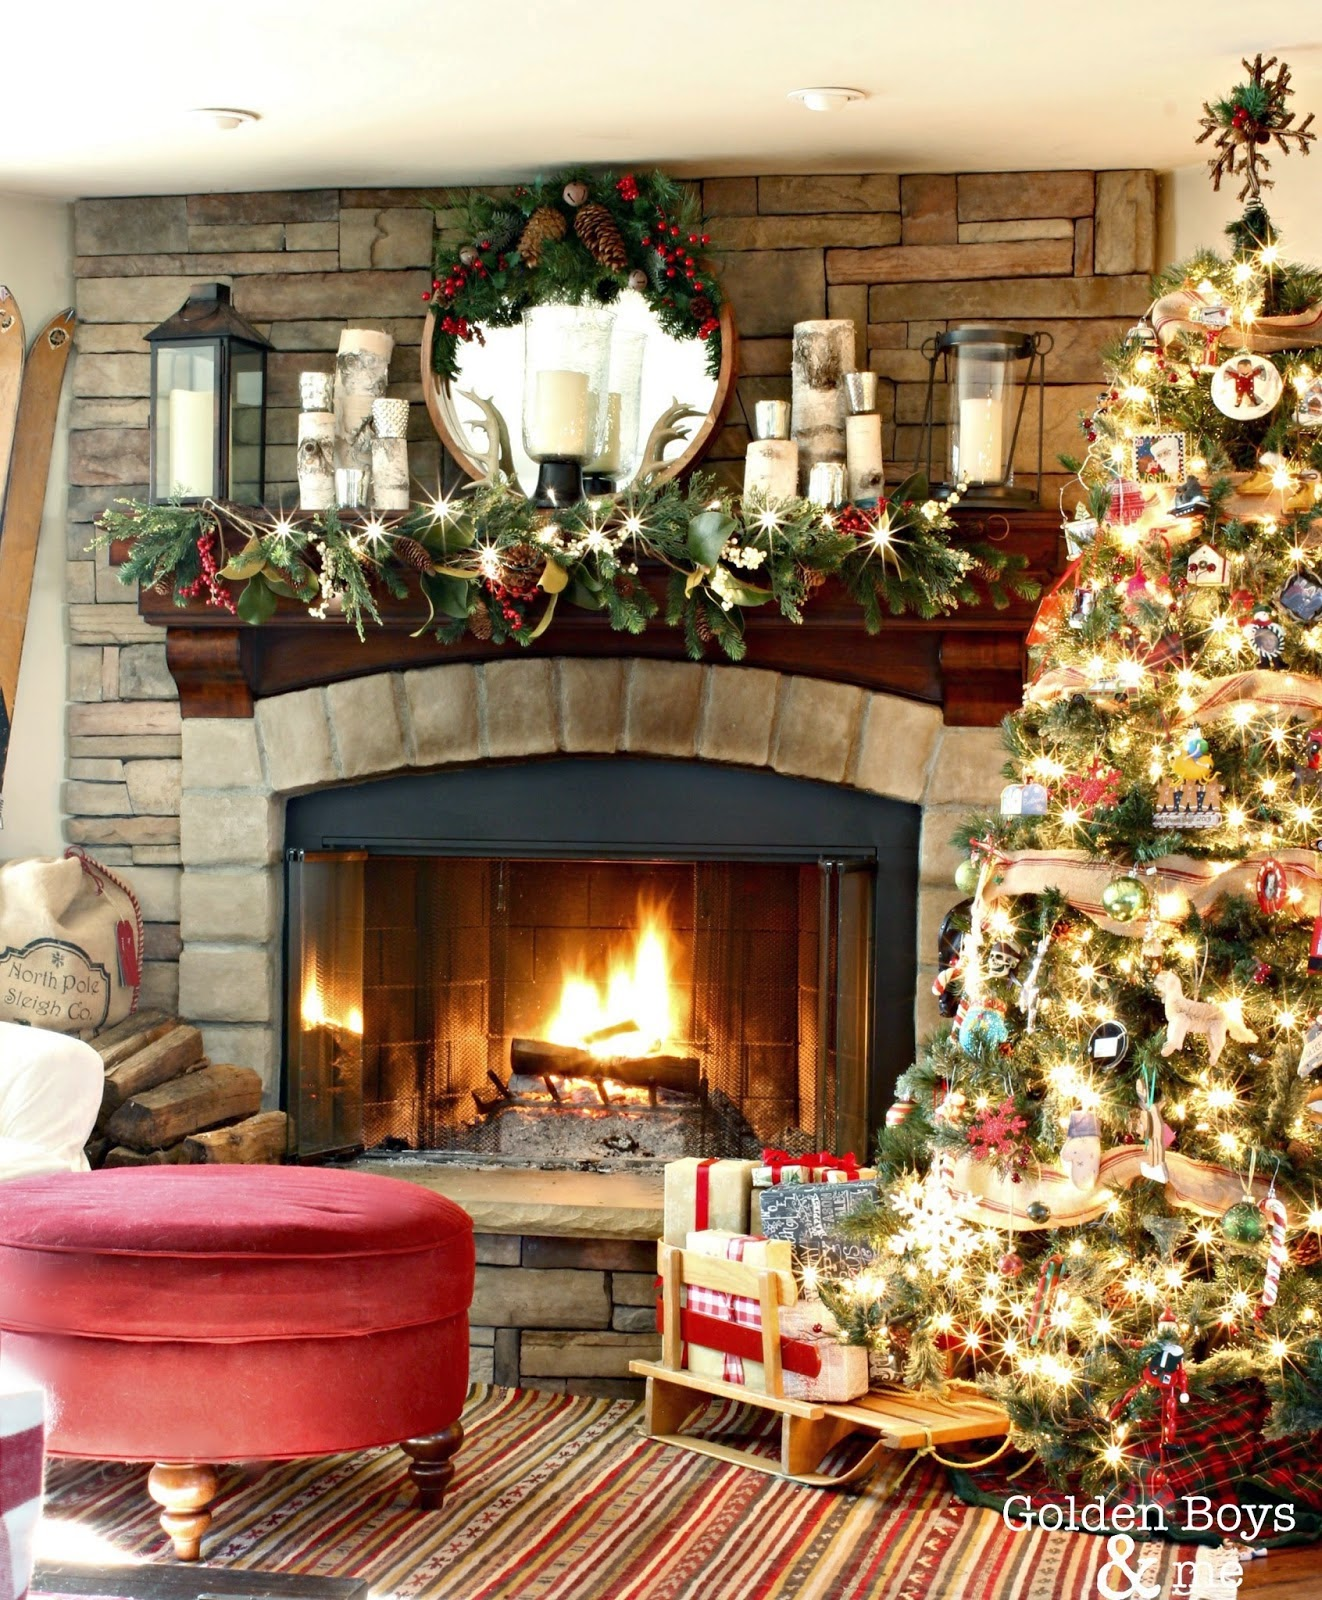 Golden boys and me holiday home tour 2014 for How to decorate a fireplace for christmas